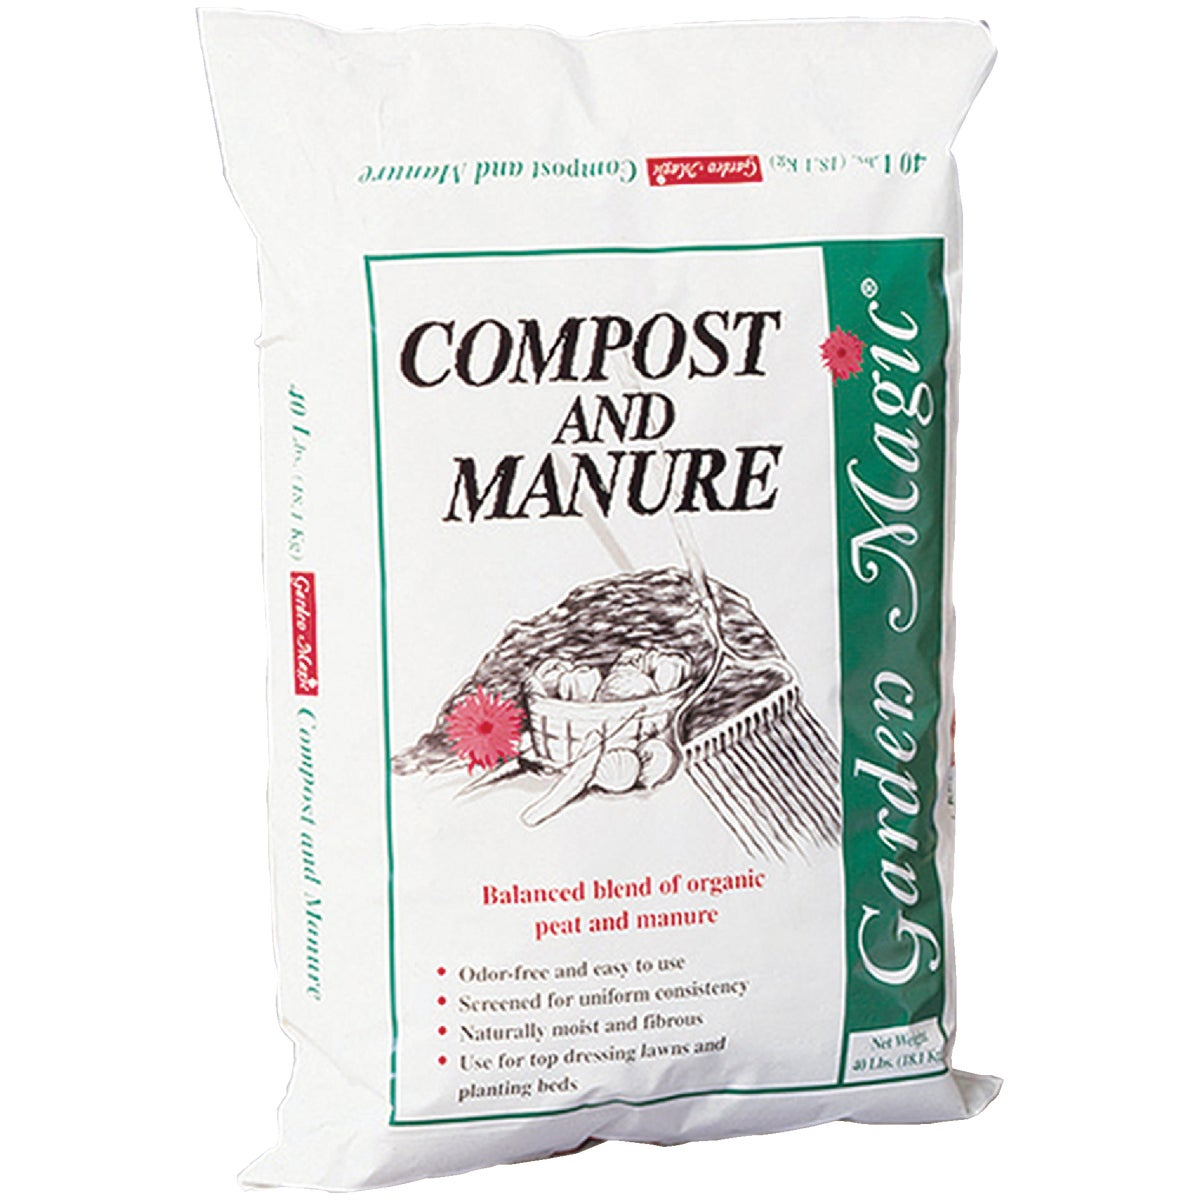 40LB COMPOST & MANURE - 5240 by Michigan Peat